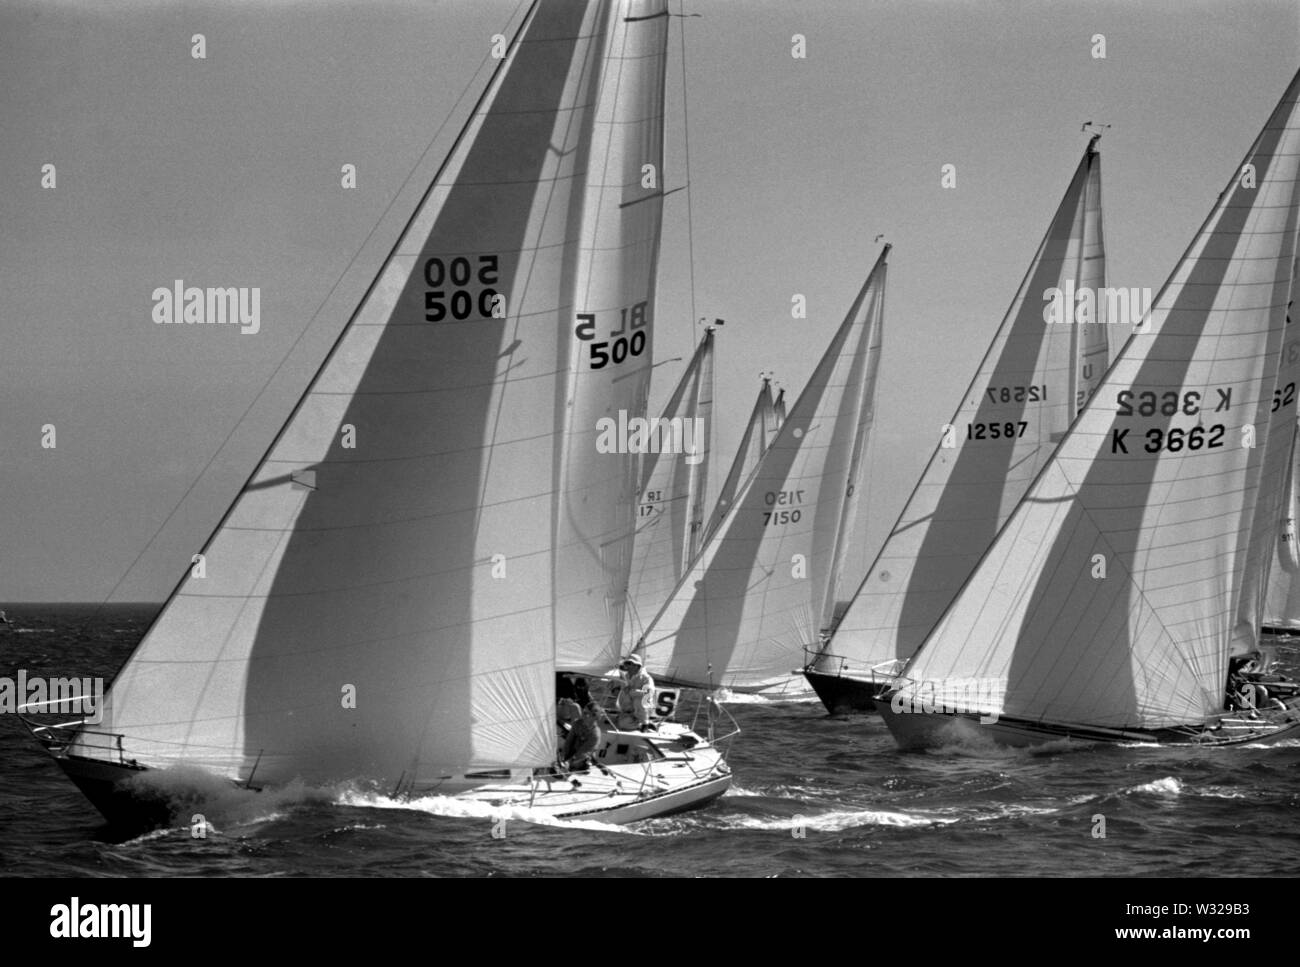 AJAXNETPHOTO. JULY, 1974. TORBAY, ENGLAND. - ONE TON CUP WORLDS - FLEET STARTS 1ST RACE.PHOTO:JONATHAN EASTLAND/AJAX REF:7420719A - Stock Image